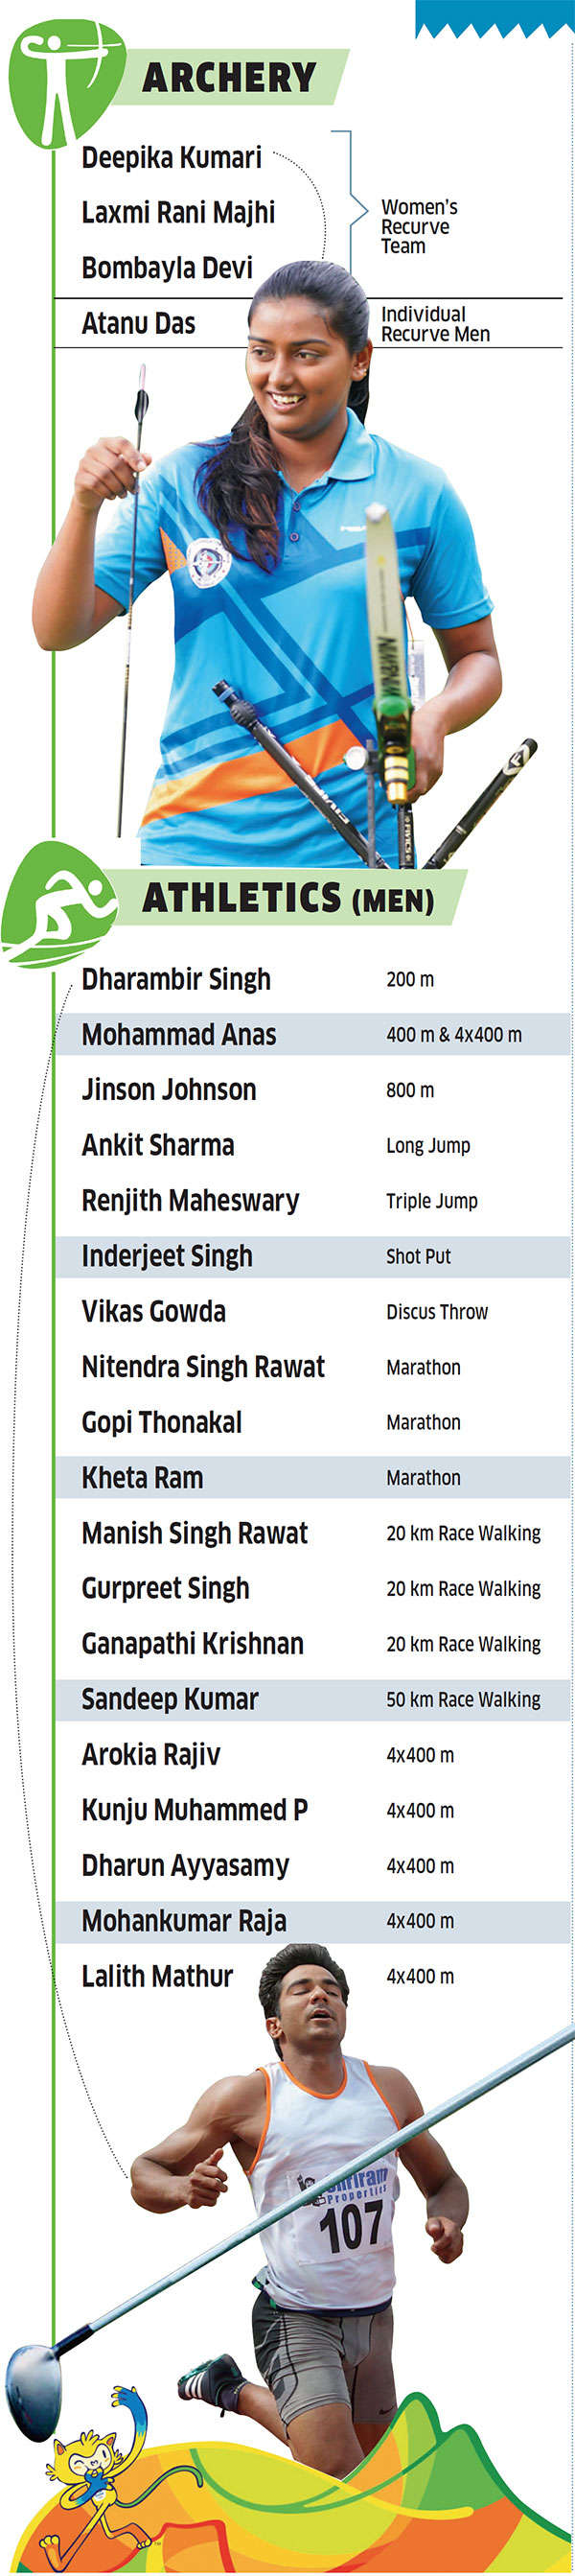 Rio Olympics: Will the biggest contingent of Indian athletes result in the highest ever medal haul too?